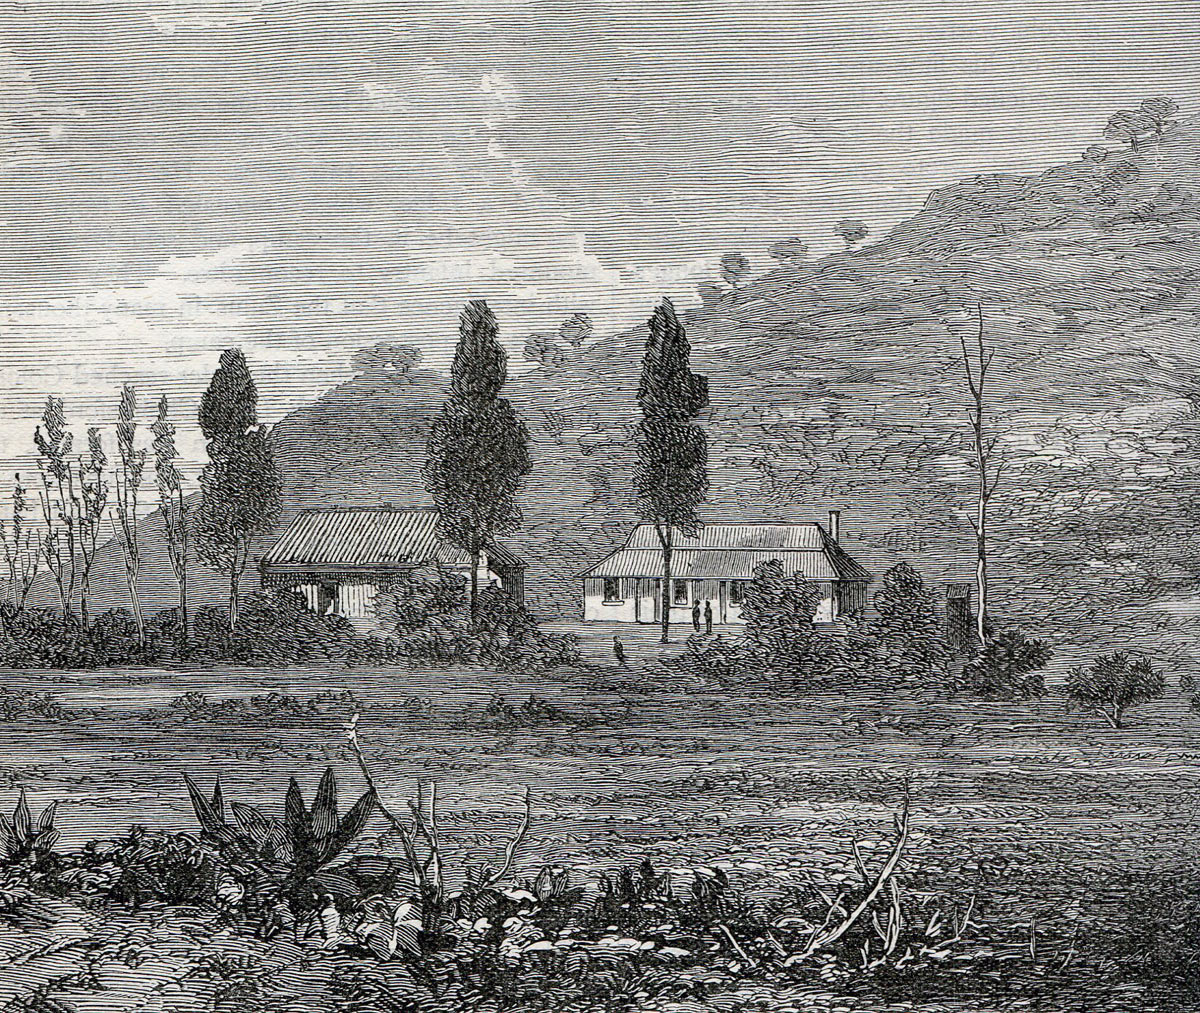 Rorke's Drift Mission Station before the Zulu attack: Battle of Rorke's Drift on 22nd January 1879 in the Zulu War